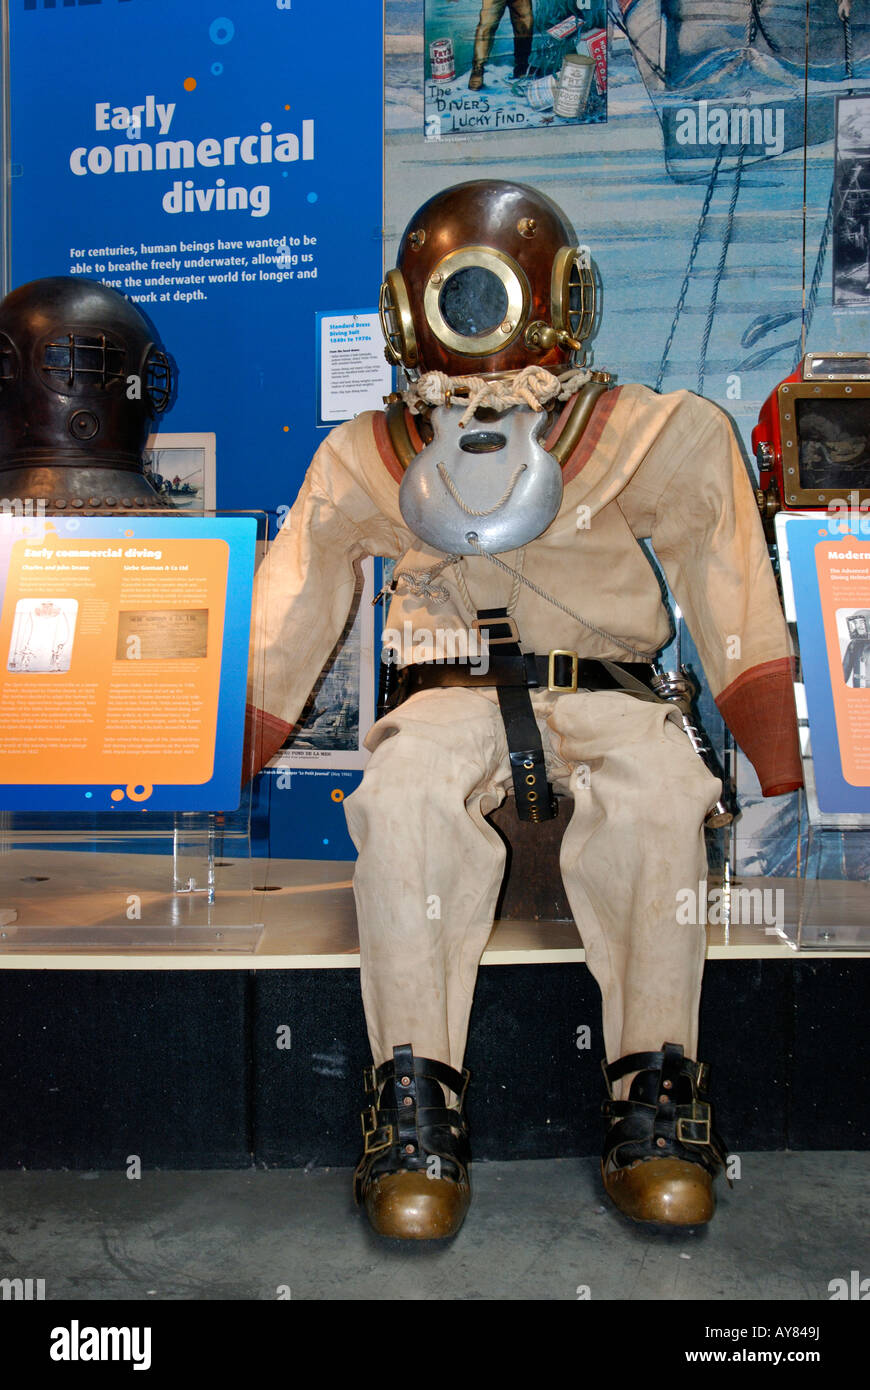 an old style deep sea diving suit at an exhibition in the national maritime museum,falmouth,cornwall - Stock Image